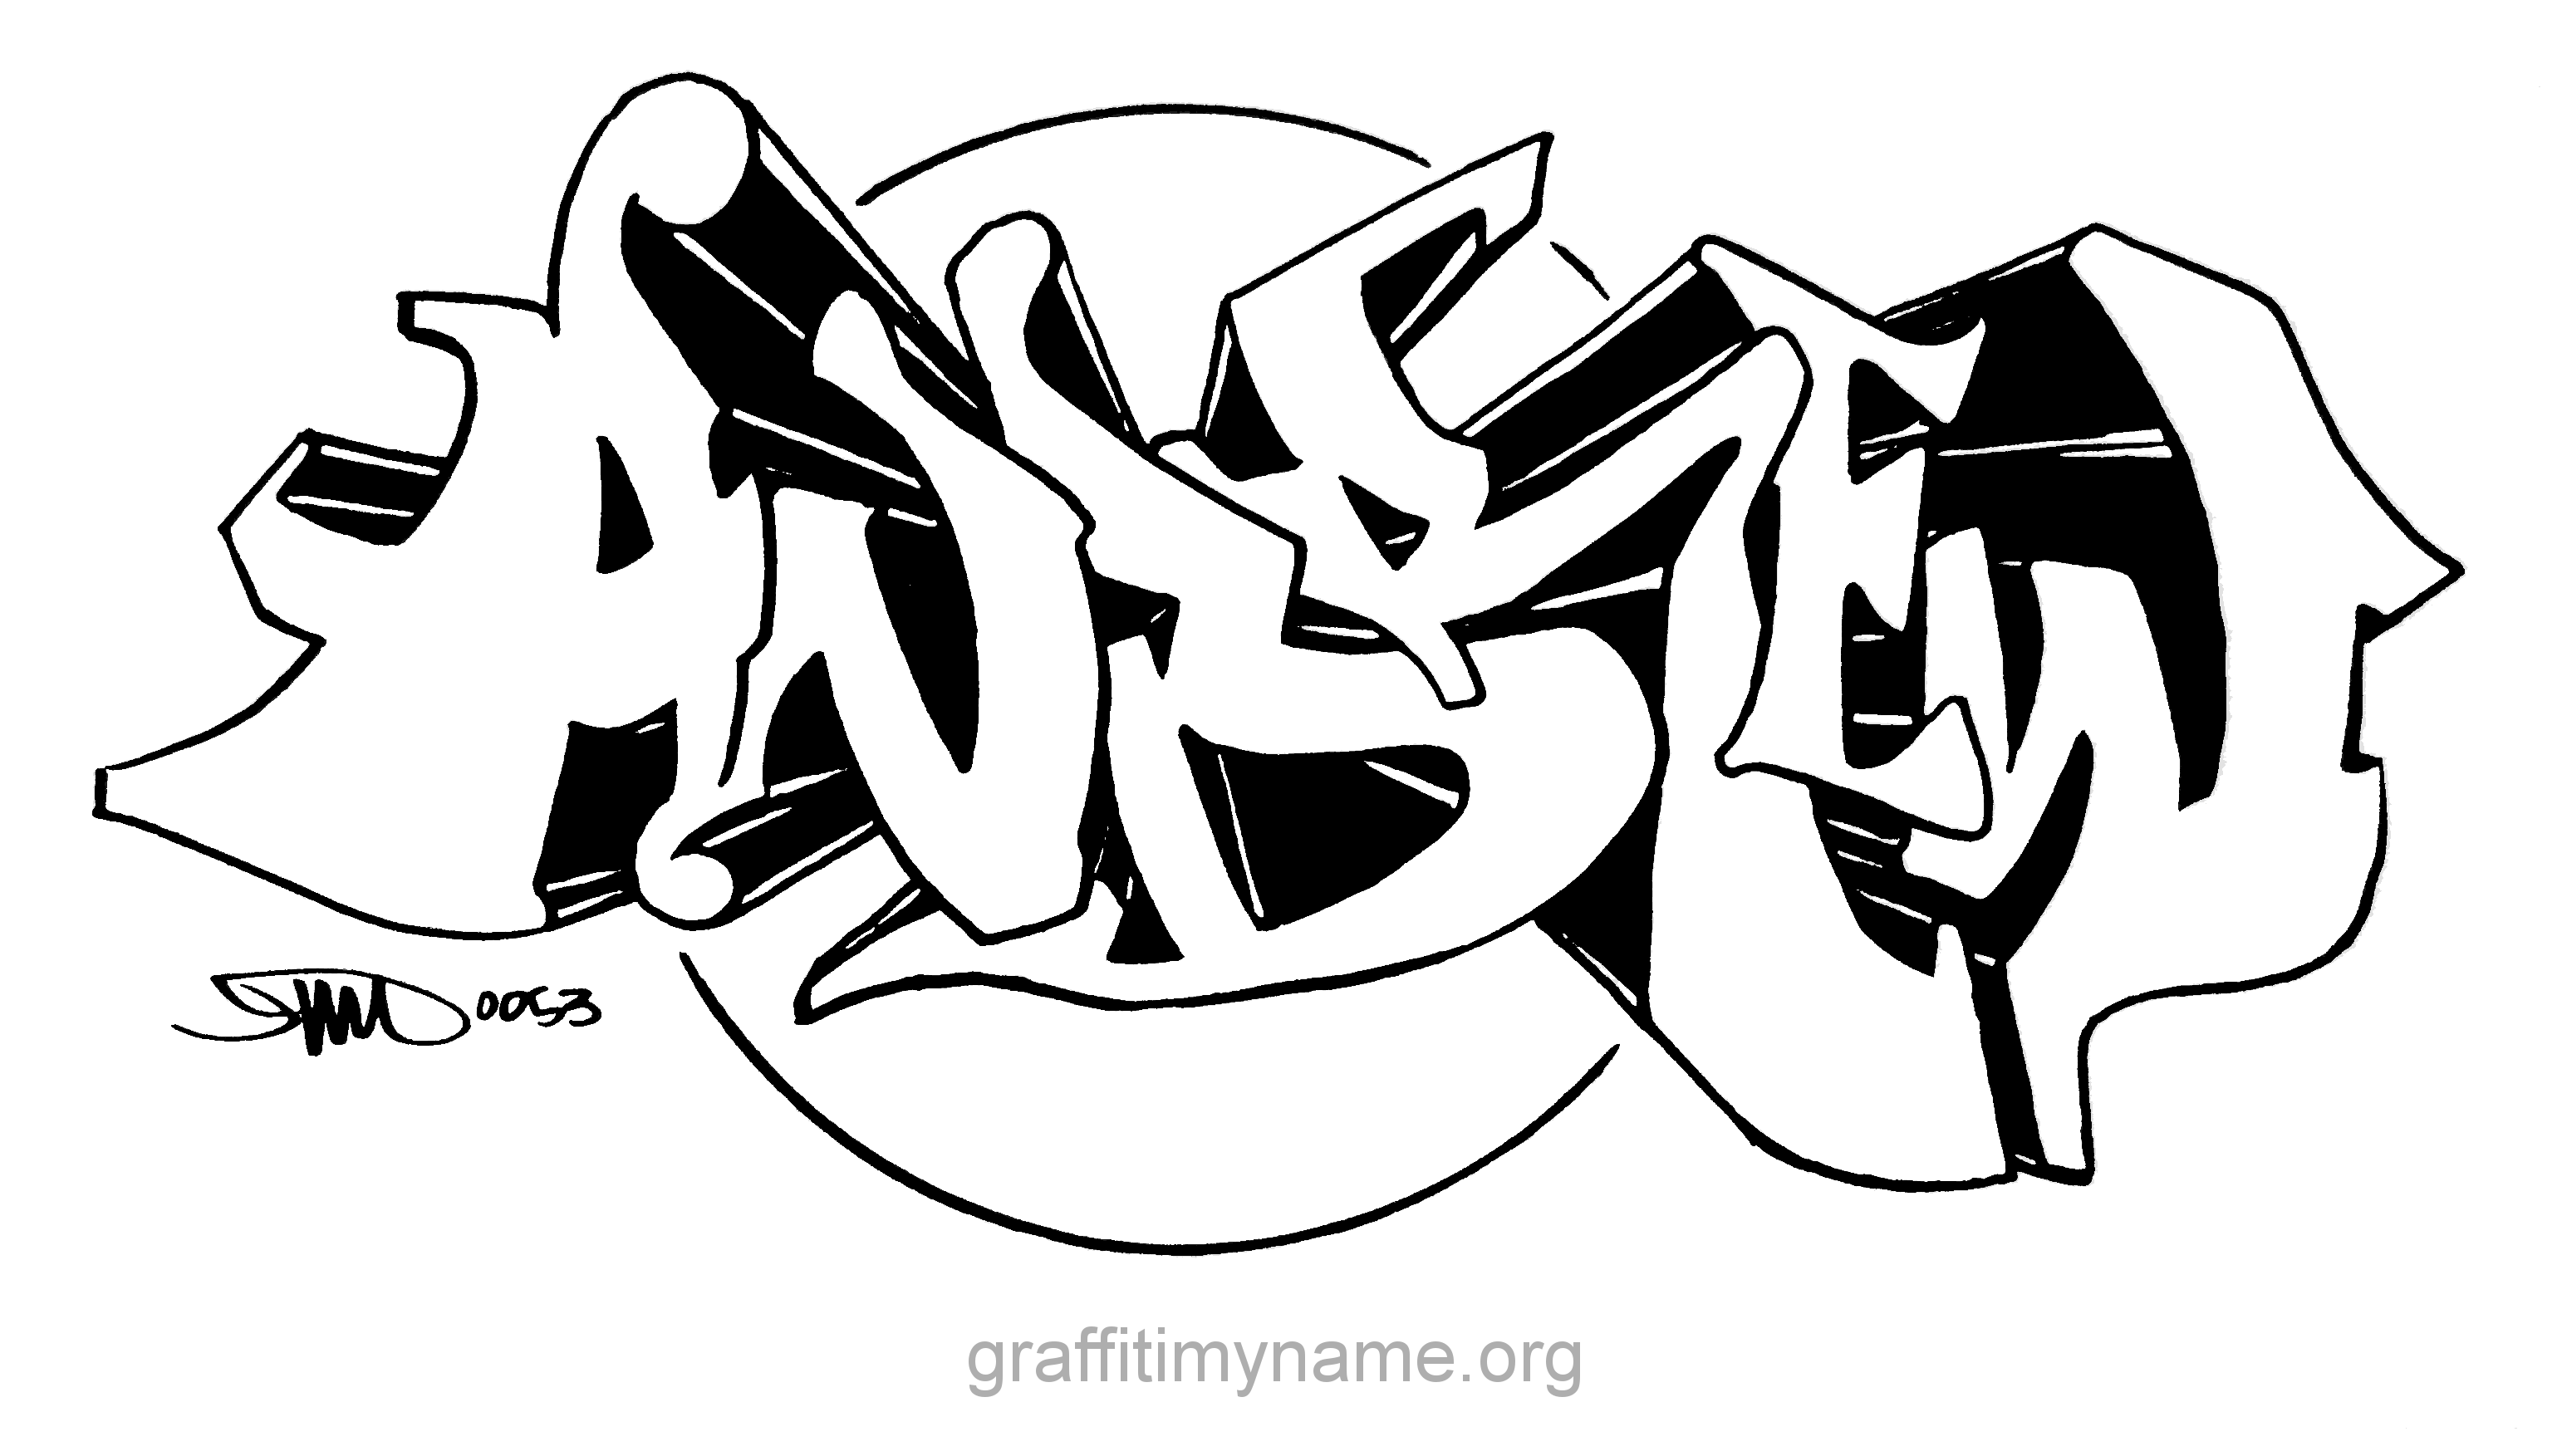 Andrew Graffiti Name Coloring Pages Sketch Coloring Page Name Coloring Pages Graffiti Names Graffiti My Name